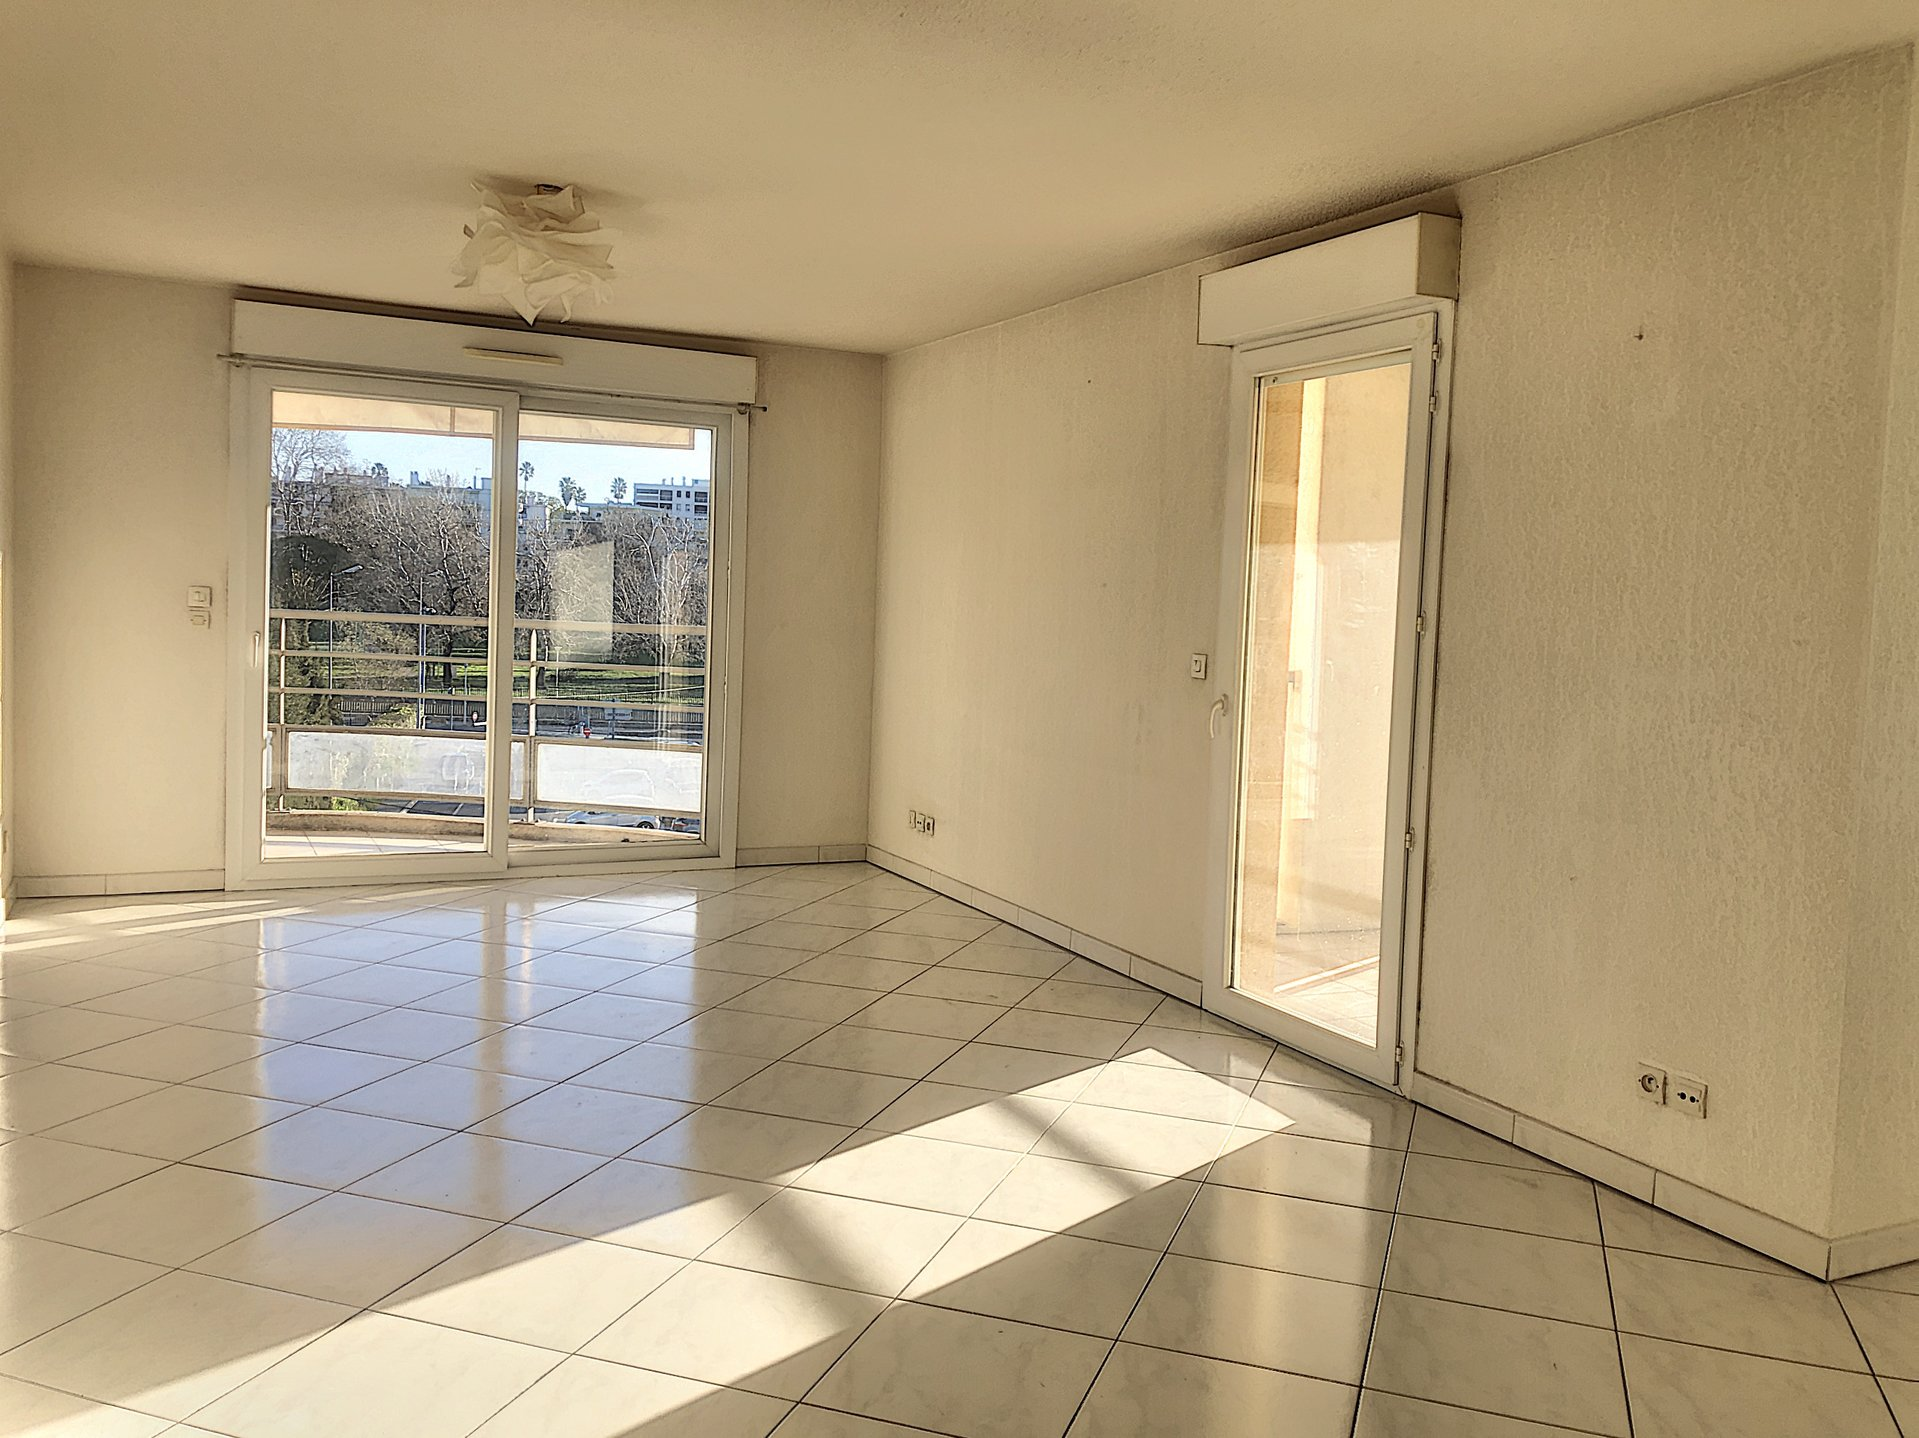 CAGNES SUR MER (06800) - Appartements 3P - TERRASSE - DOUBLE GARAGE